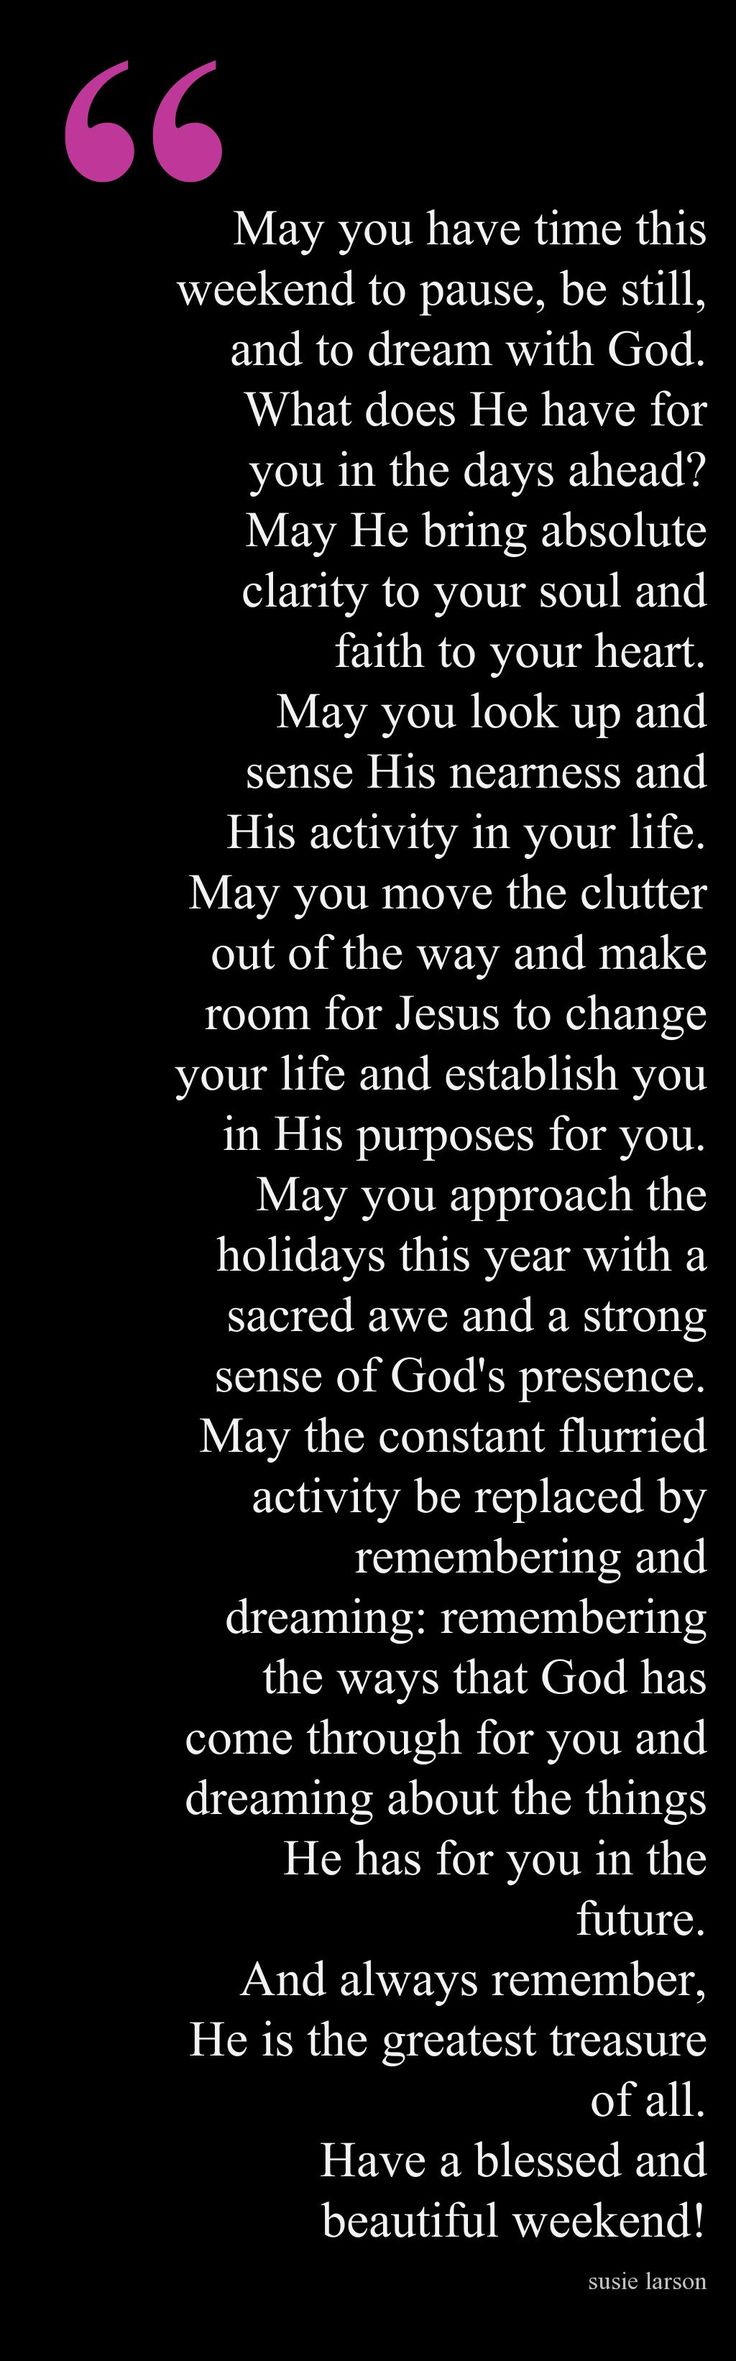 Prayer for Thanksgiving Weekend & the approaching Christmas Season